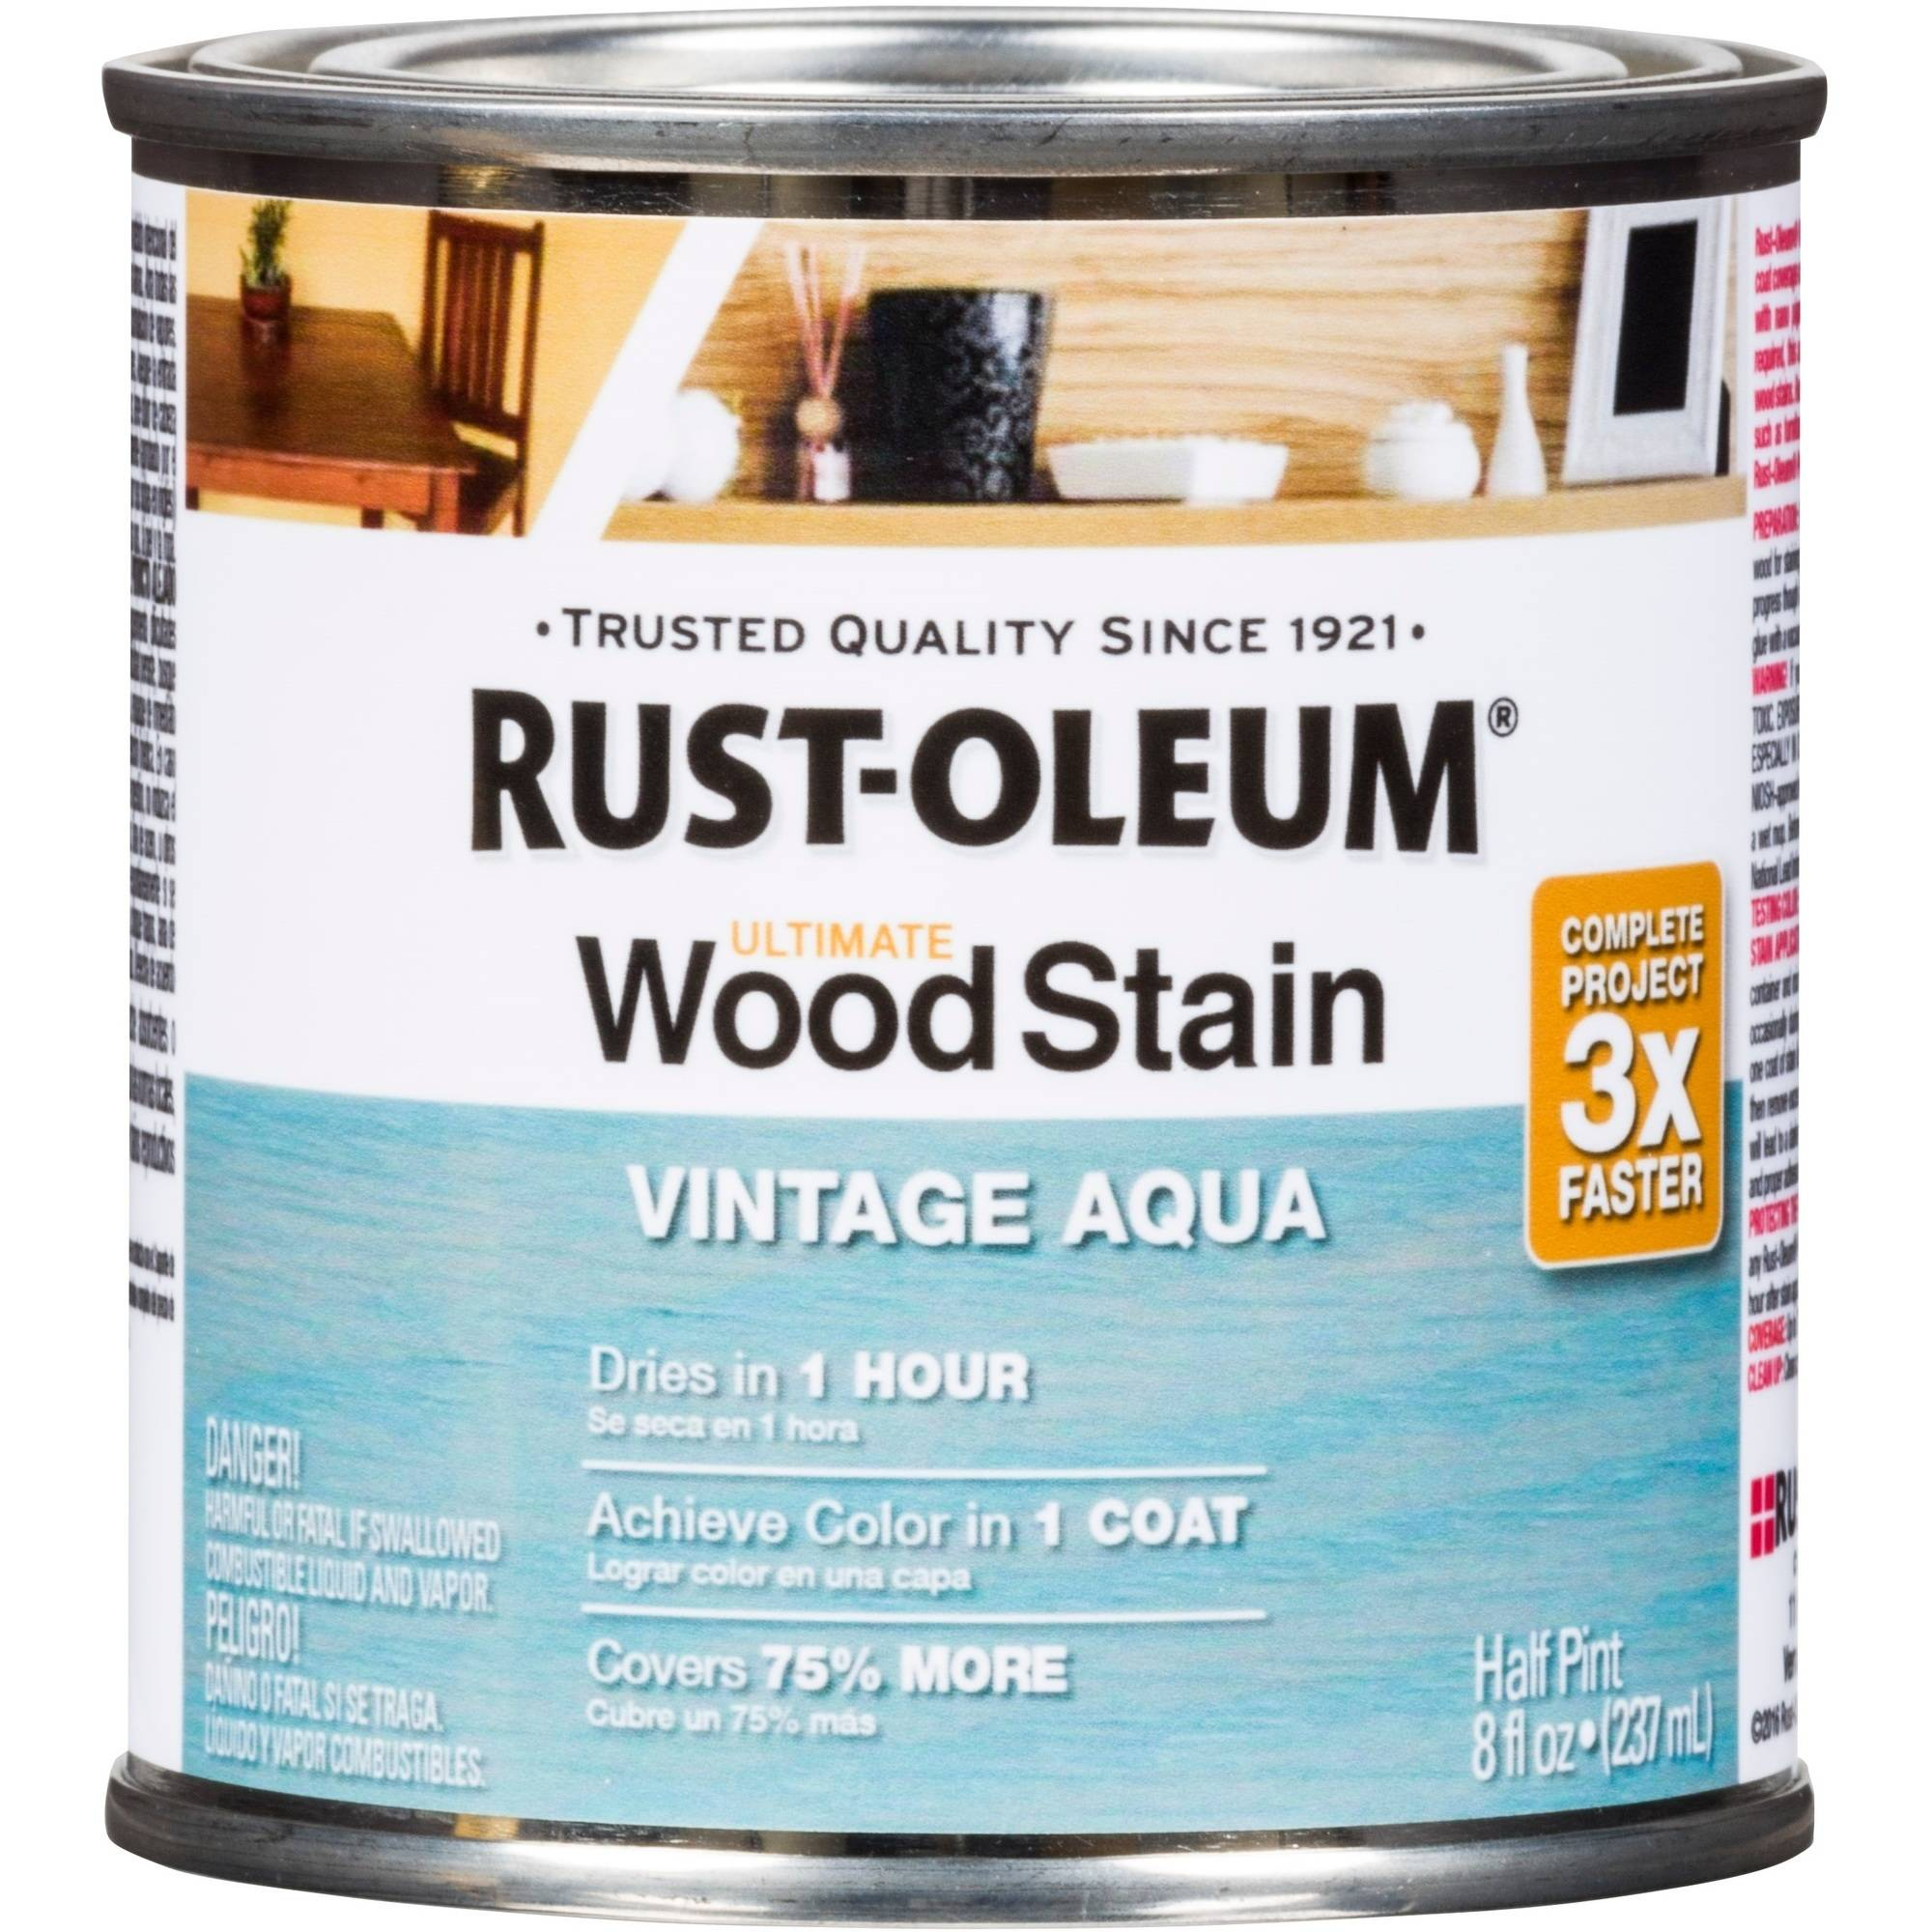 Rust-Oleum Ultimate Wood Stain, Half-Pint